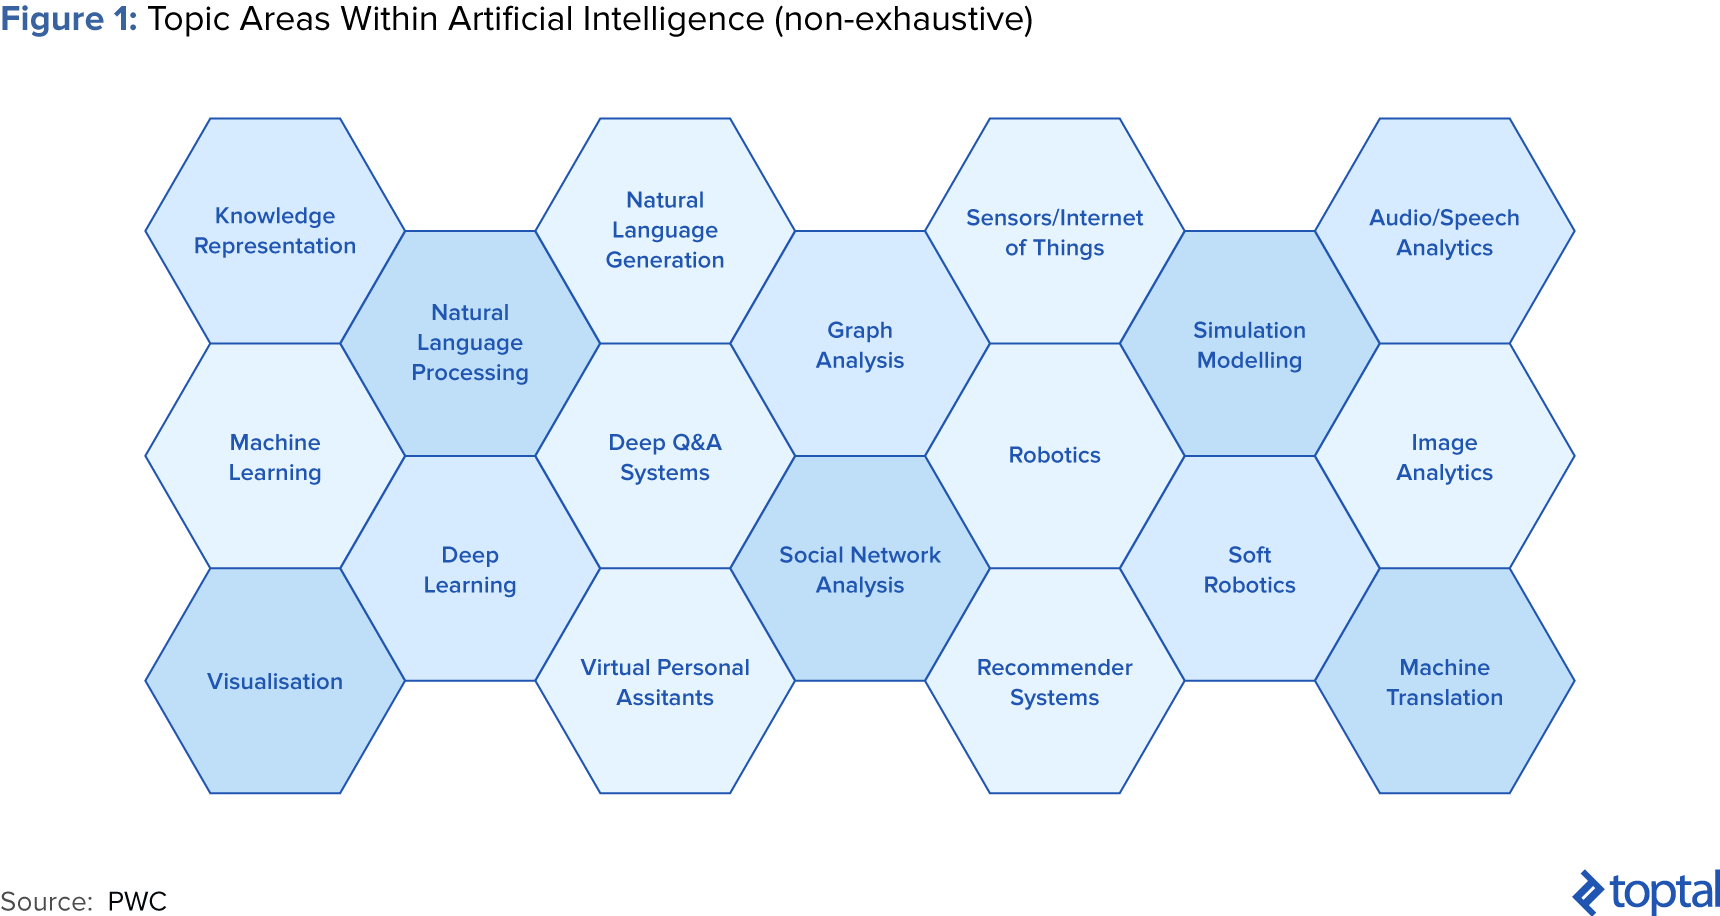 Figure 1: Topic Areas within Artificial Intelligence (Non-exhaustive)